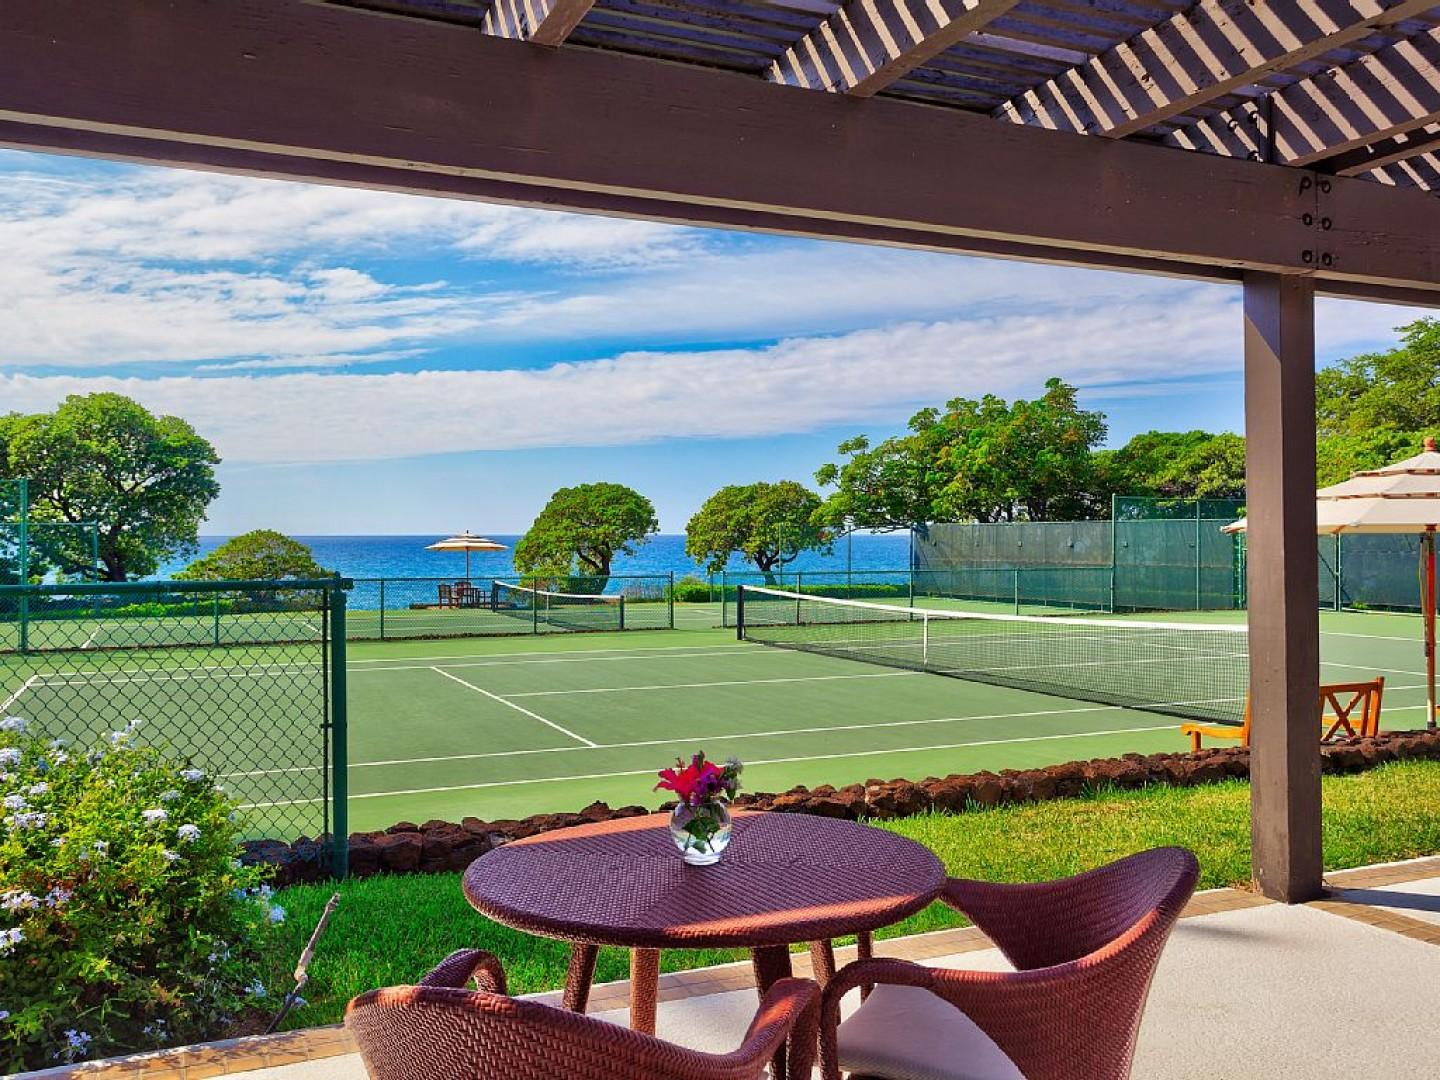 Seaside Tennis Club at Mauna Kea Beach Hotel.